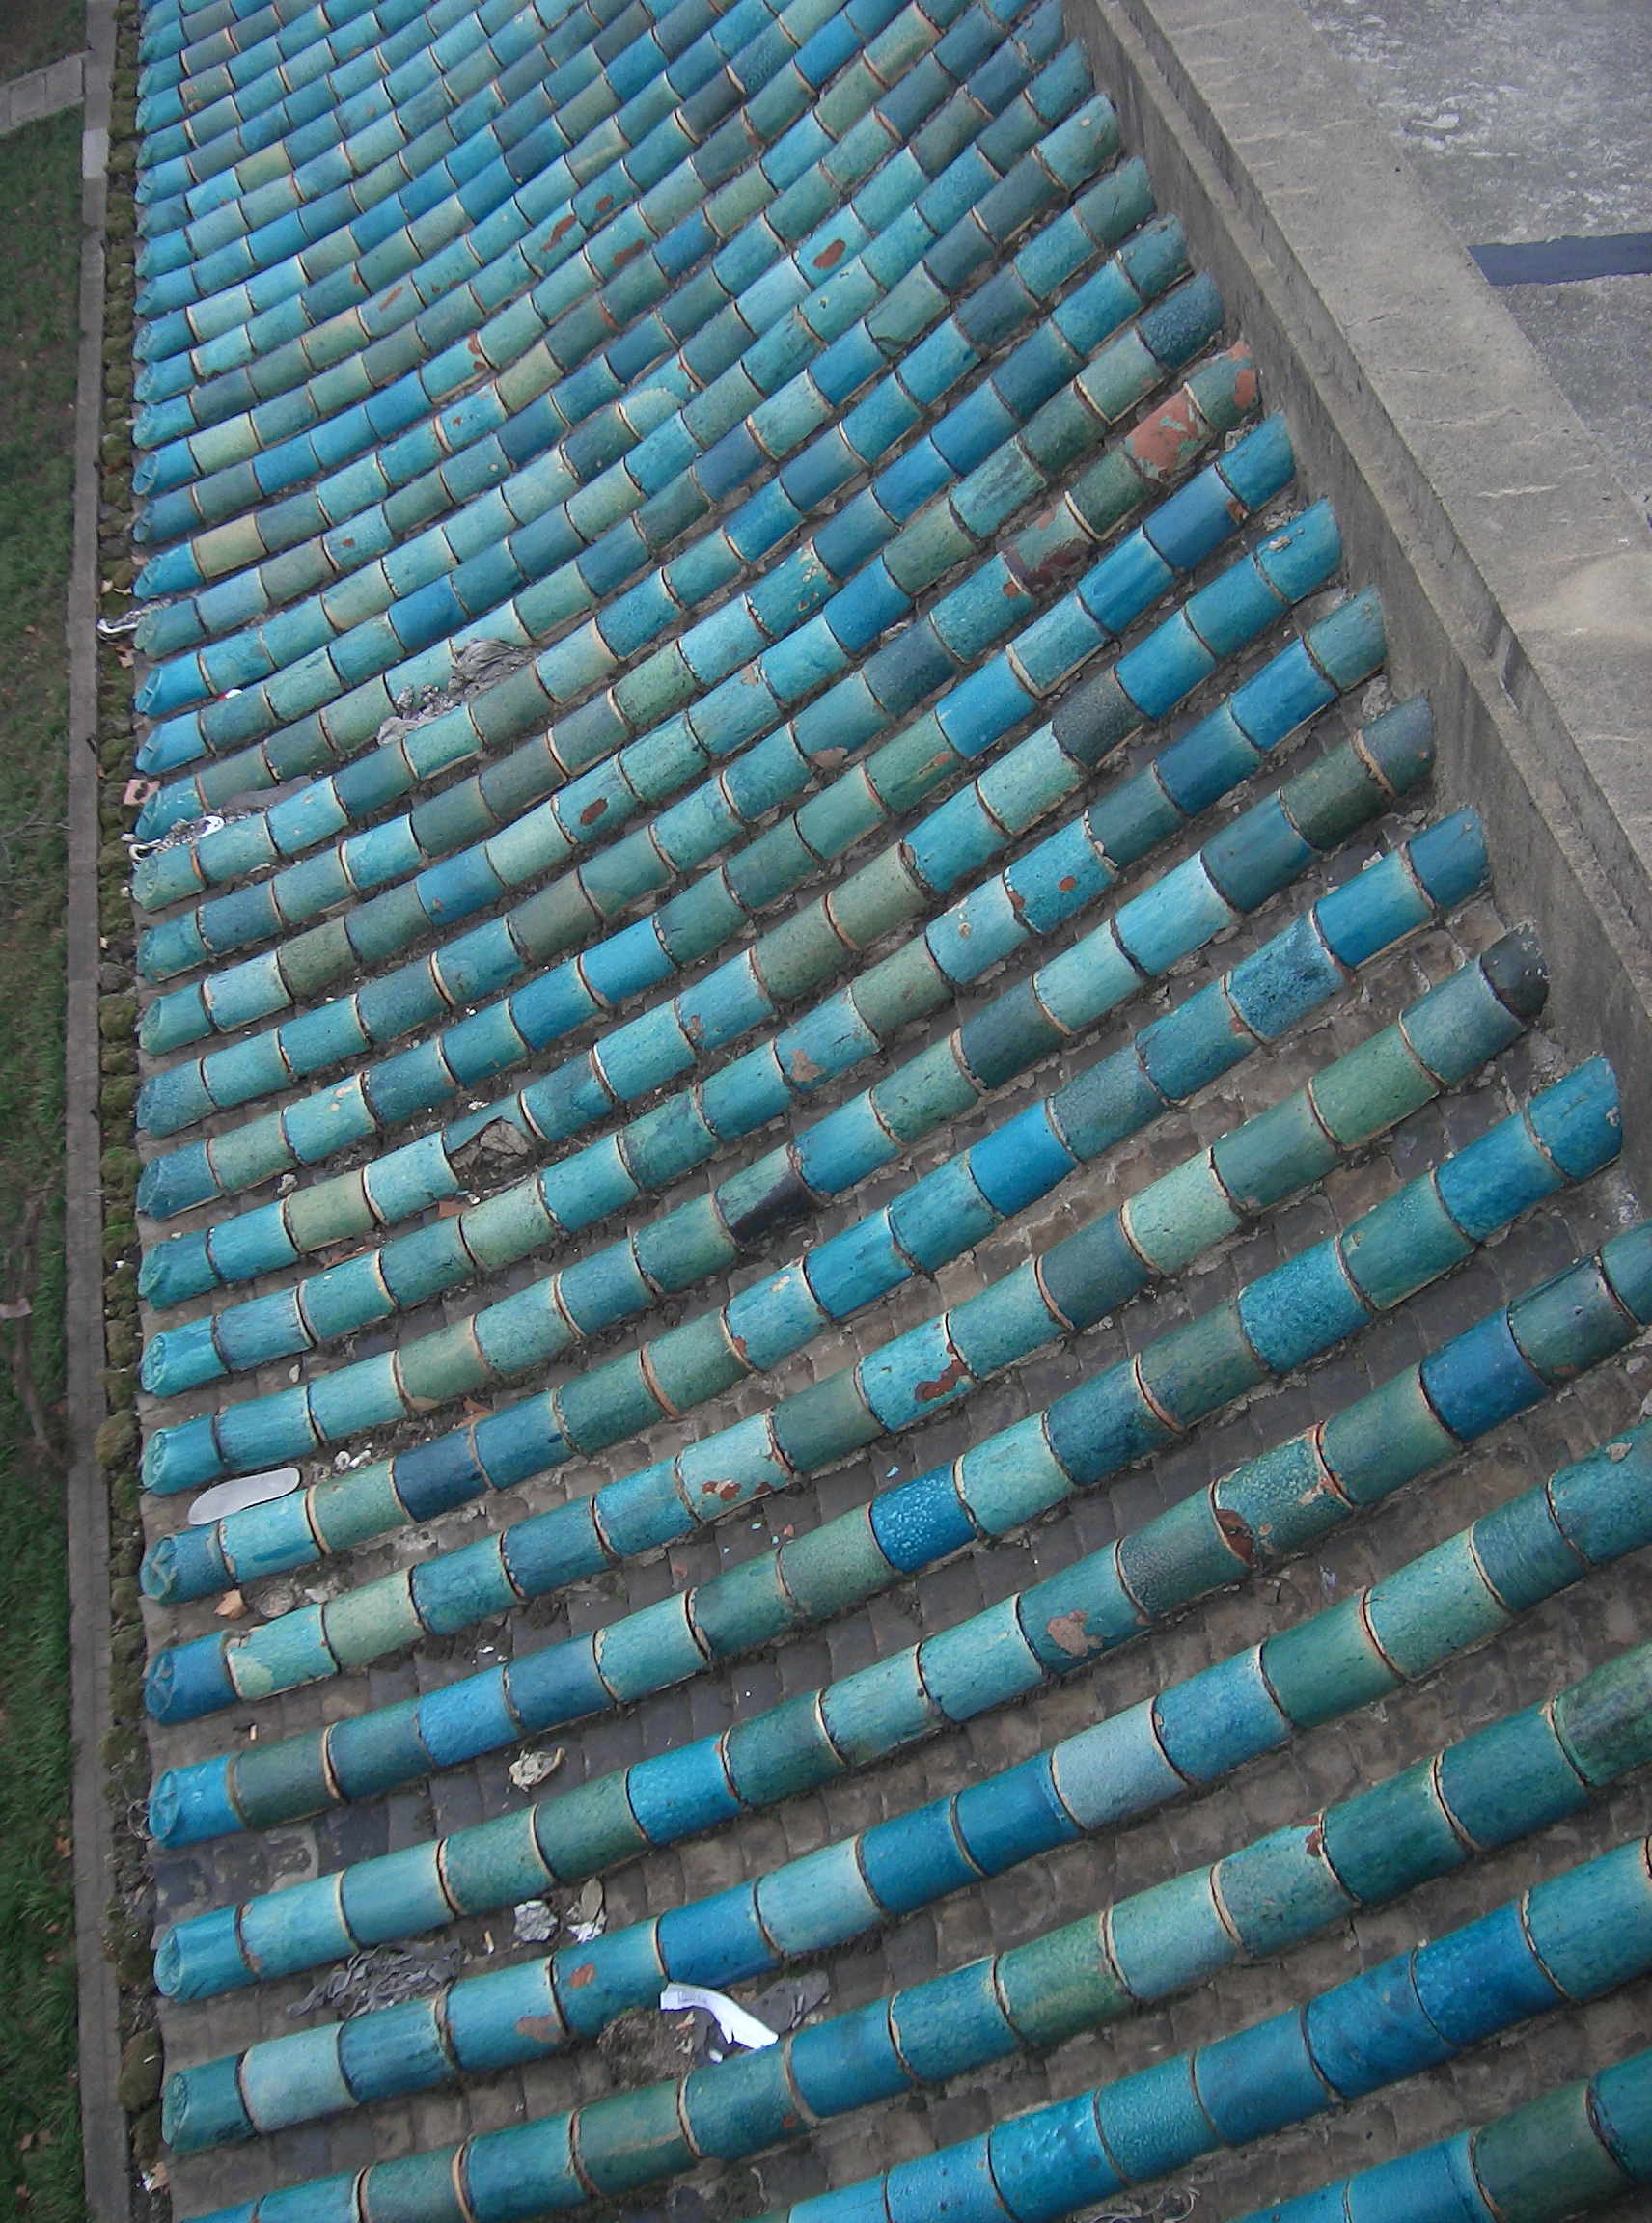 File:Wuhan University - roof tiles.JPG